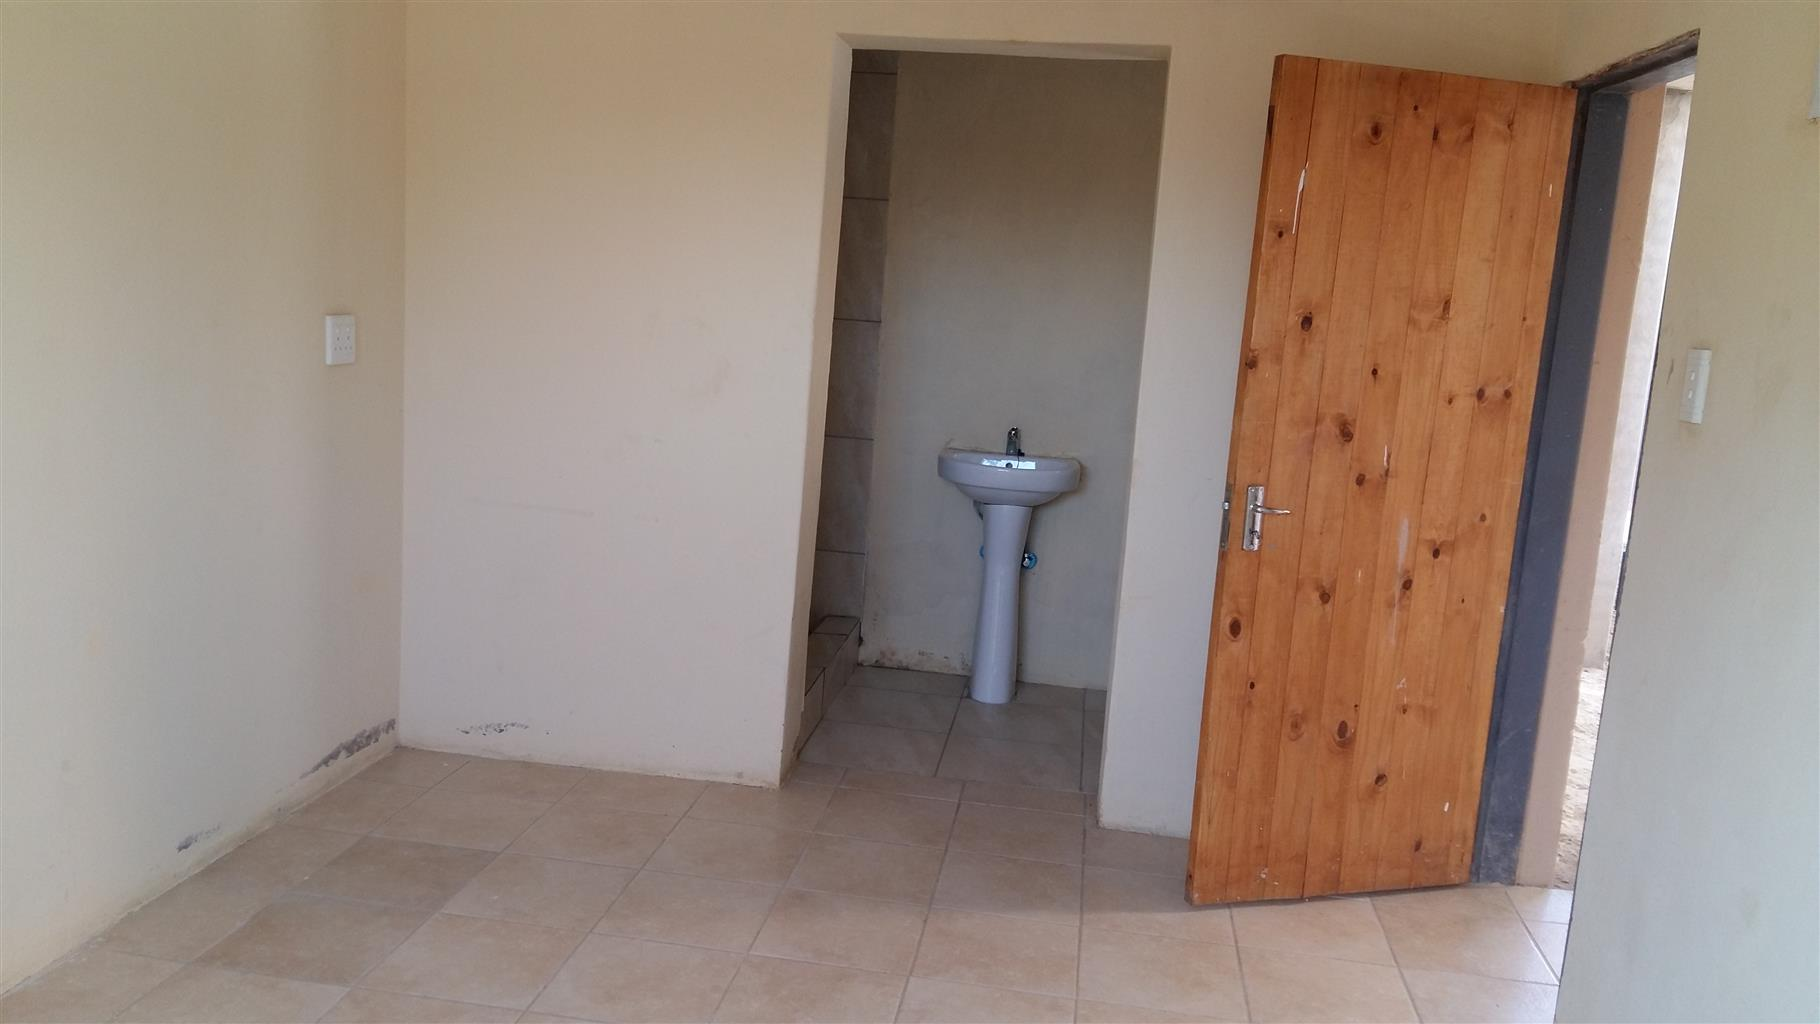 Bachelor room with shower toilet basin and kitchen sink available now at protea glen